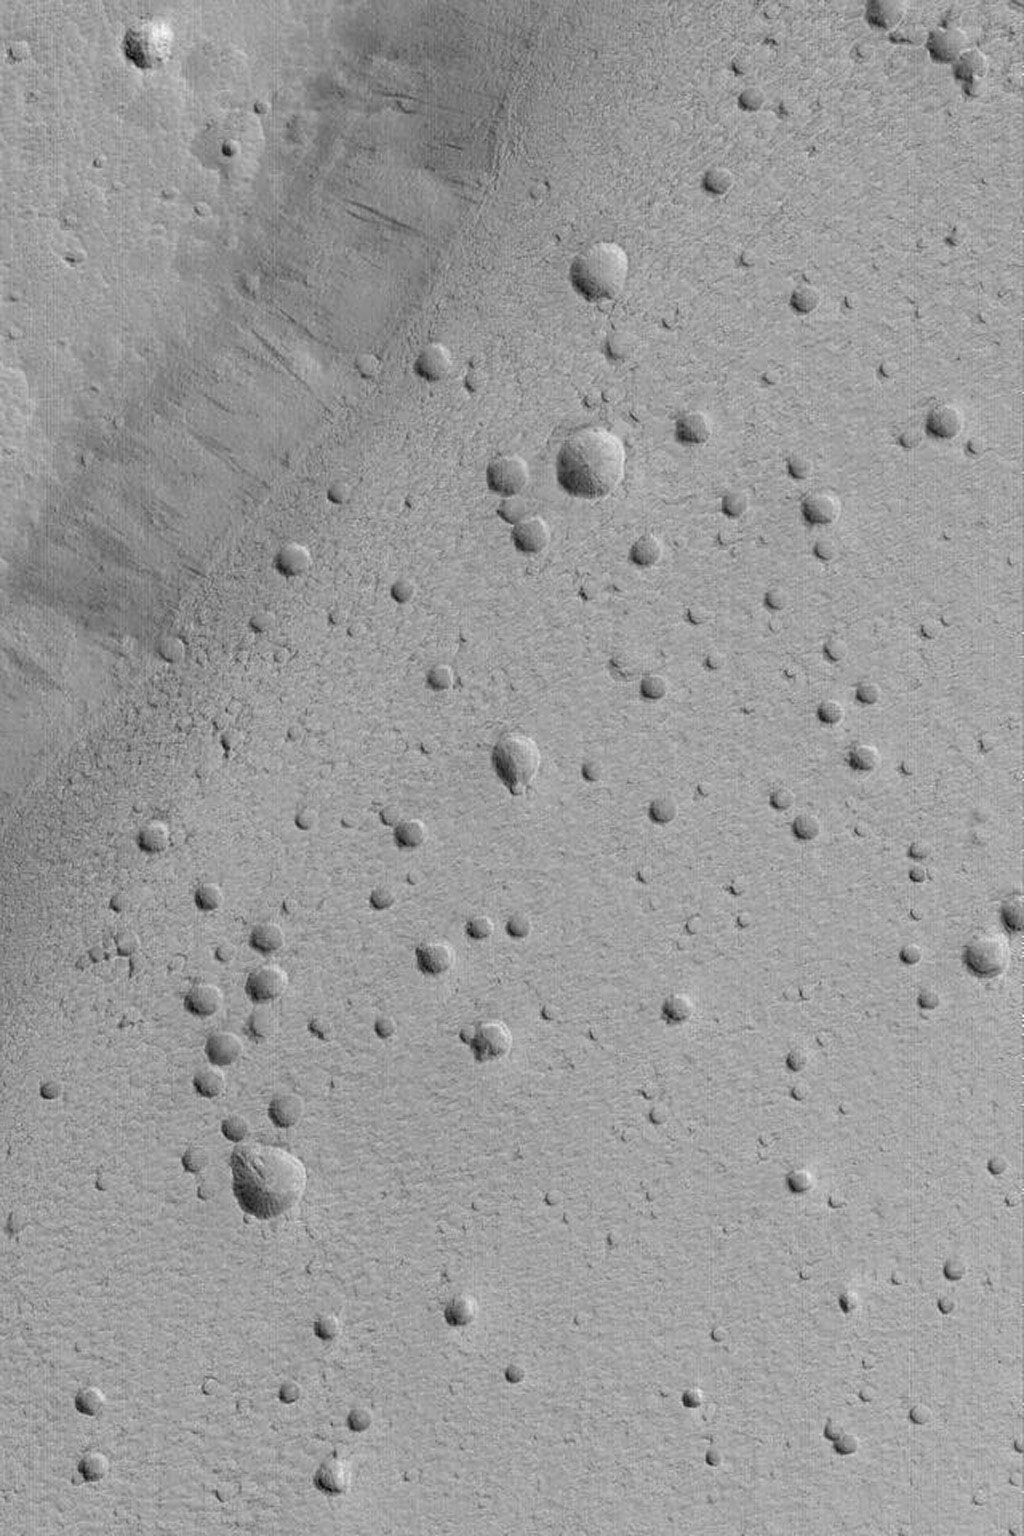 NASA's Mars Global Surveyor shows the pitted floor of the caldera of the martian volcano, Ceraunius Tholus. A caldera is a large collapse pit at the summit of a volcano.